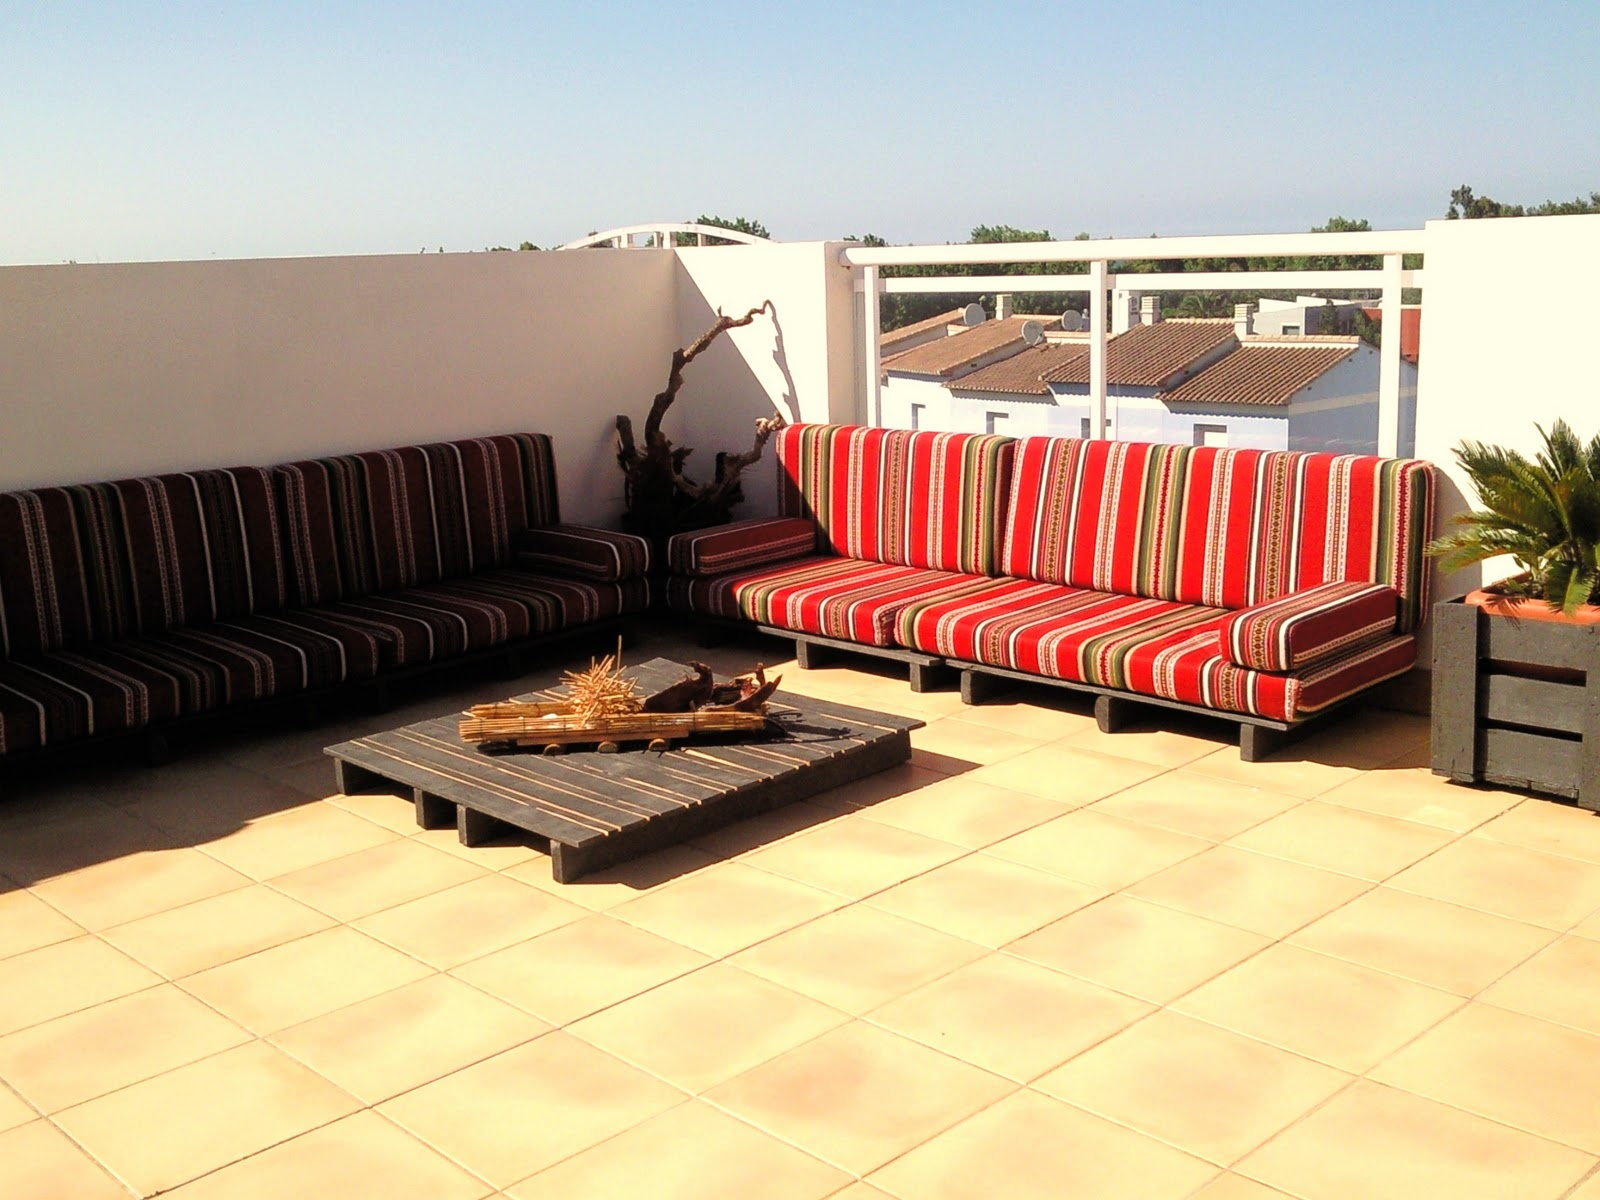 Muebles de exterior tipo chill out - Muebles chill out exterior ...